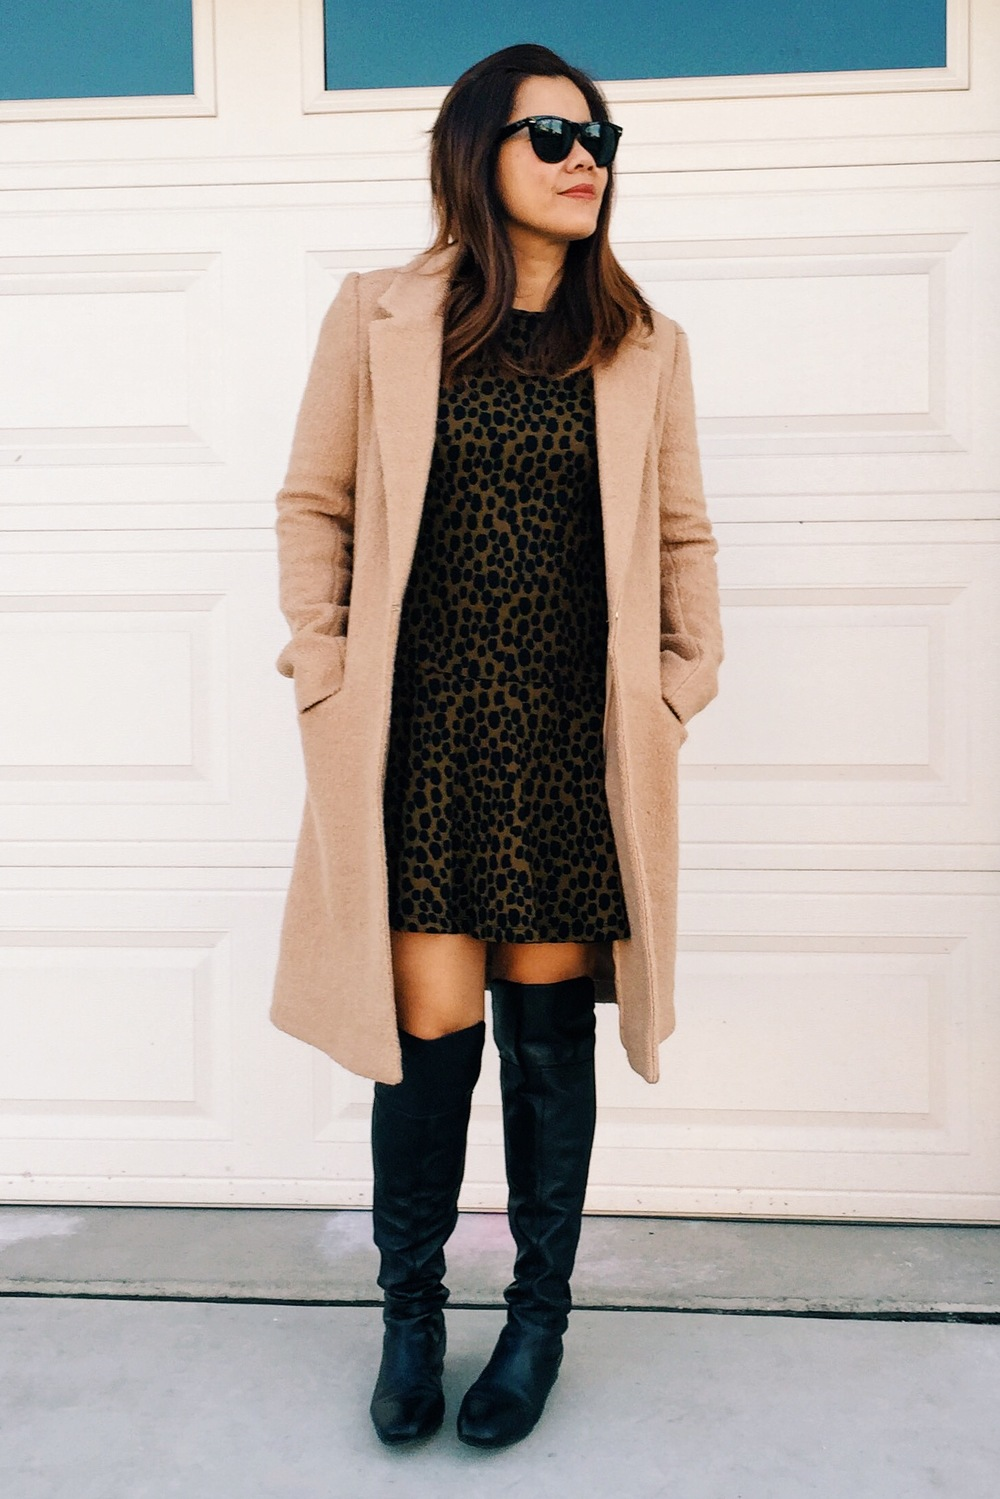 Camel coat from  Forever21 . Dress from  Loft . OTK boots from  Nordstrom .